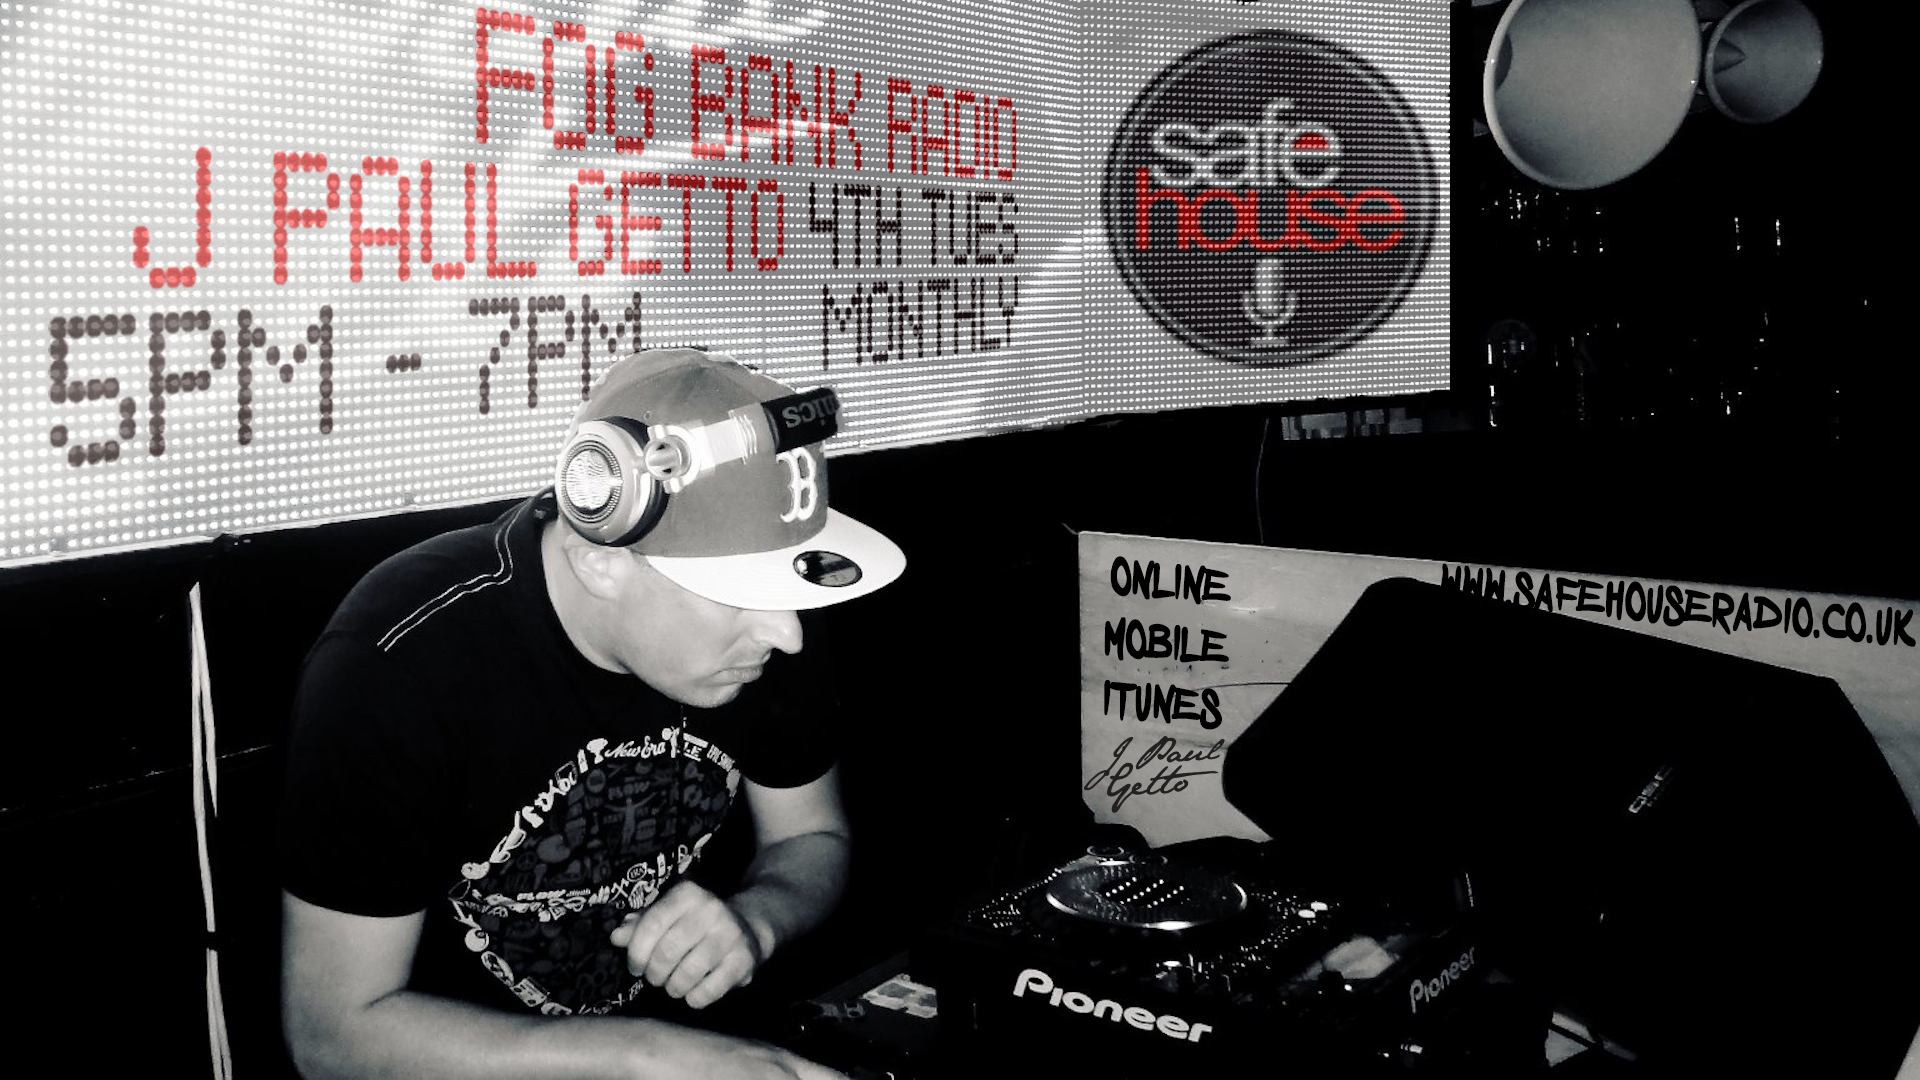 Fogbank J Paul Getto www.safehouseradio.co.uk